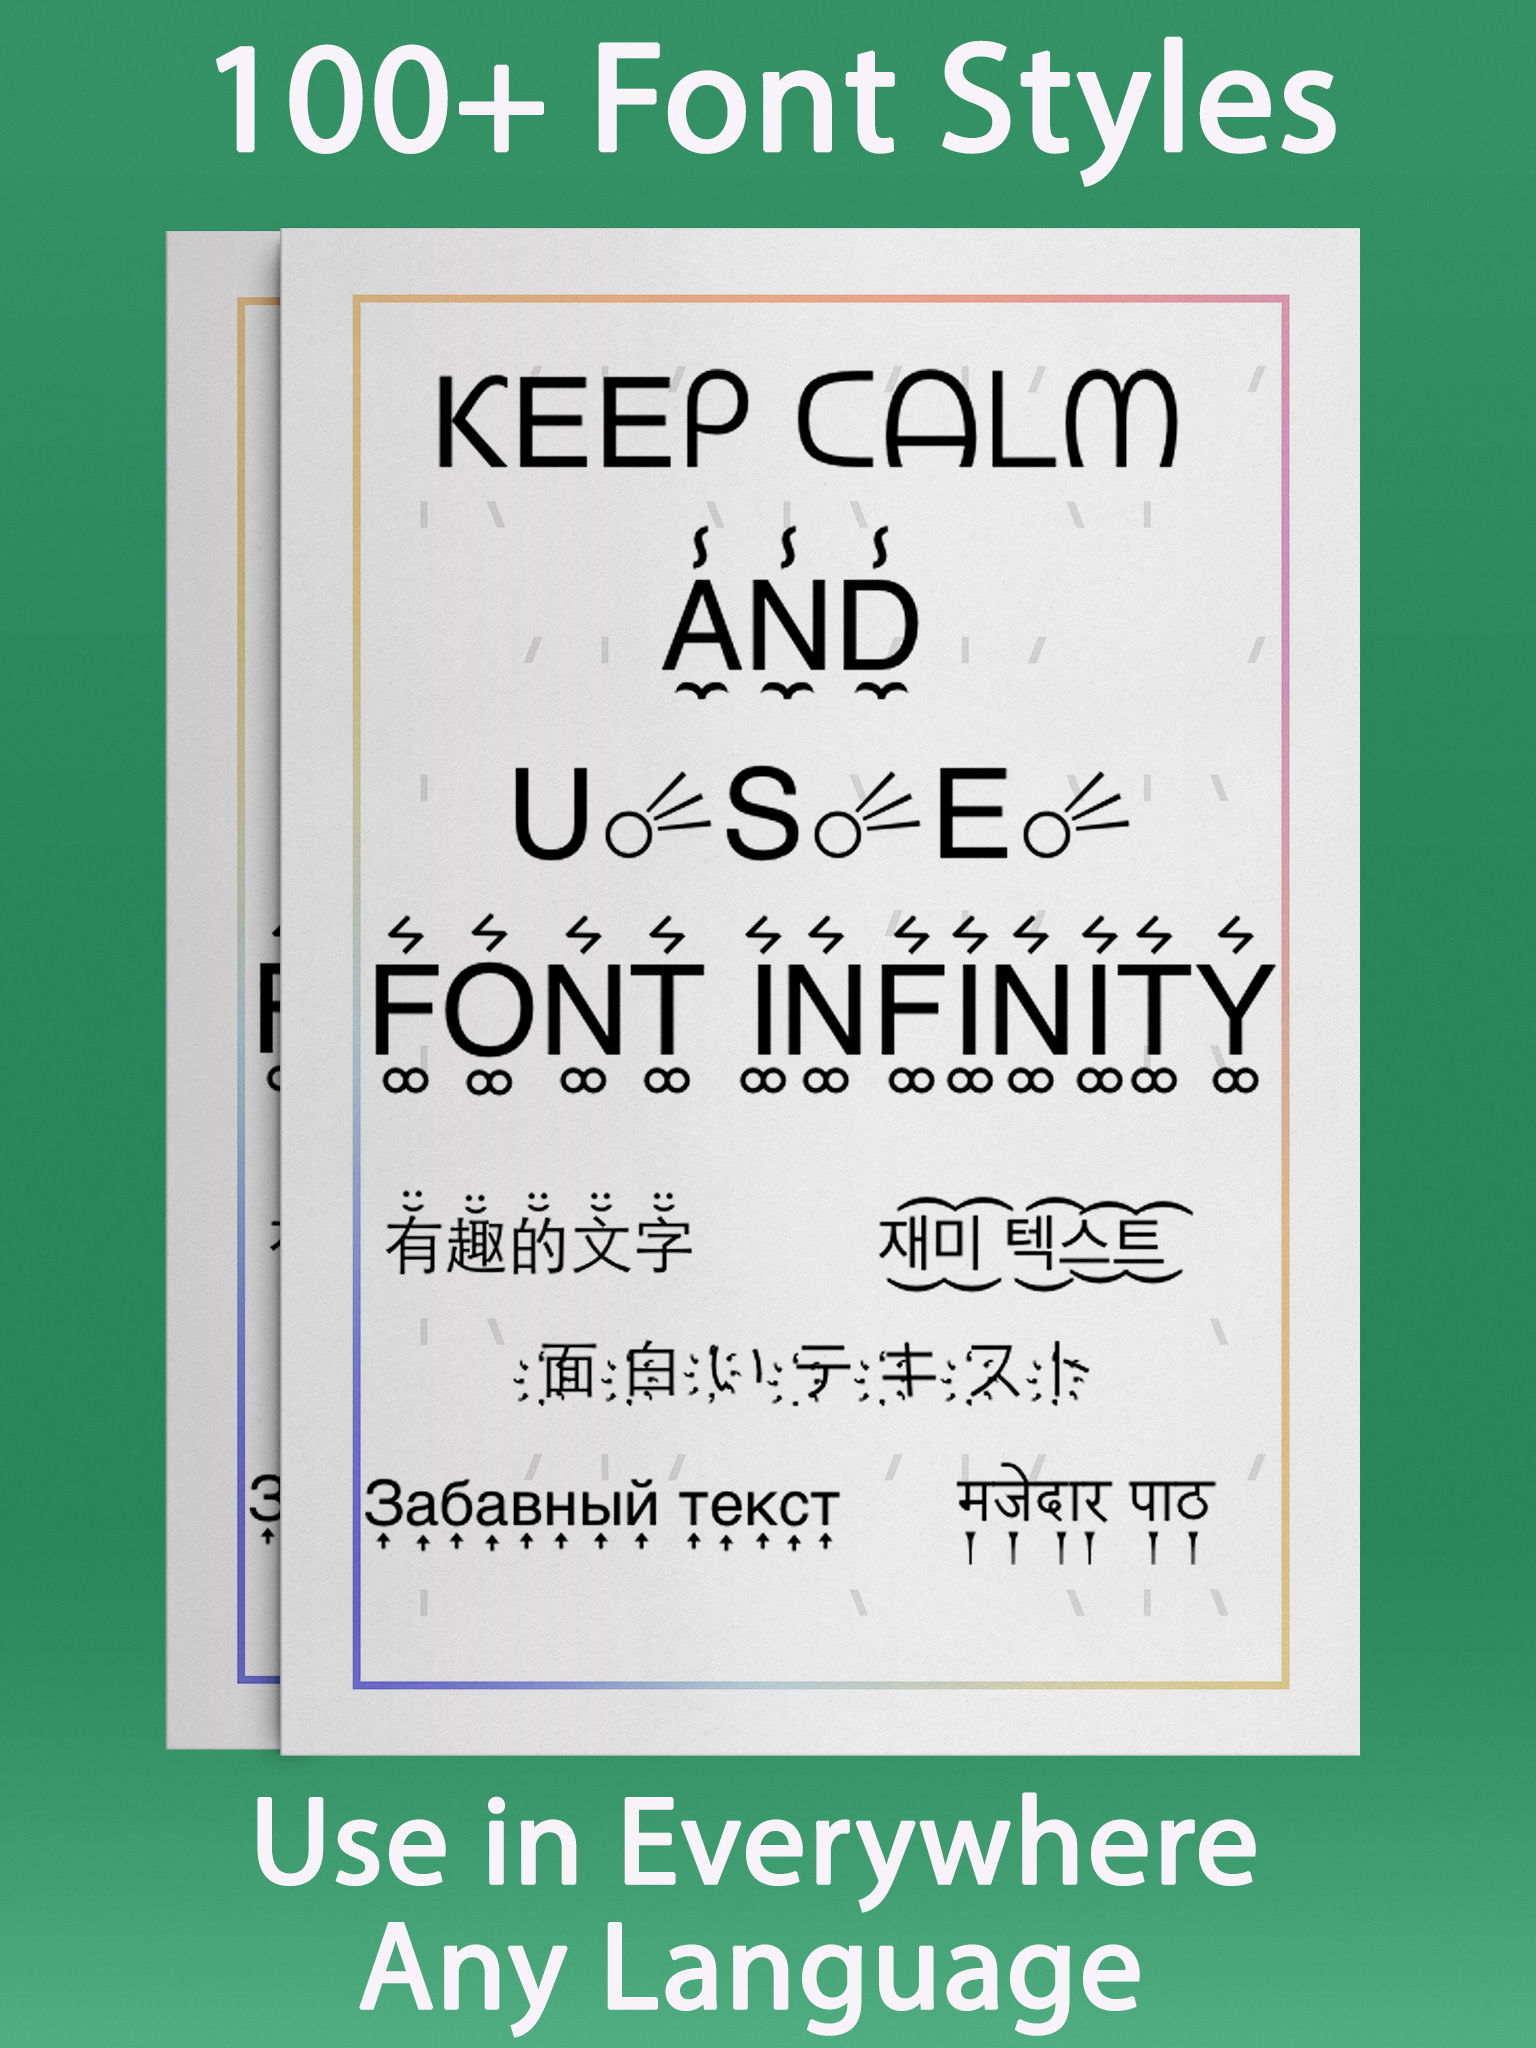 Font infinity cool new fonts changer and better text styles on the tips tricks movie on using font infinity is in youtube it is suggested watch it with wi fi network biocorpaavc Gallery